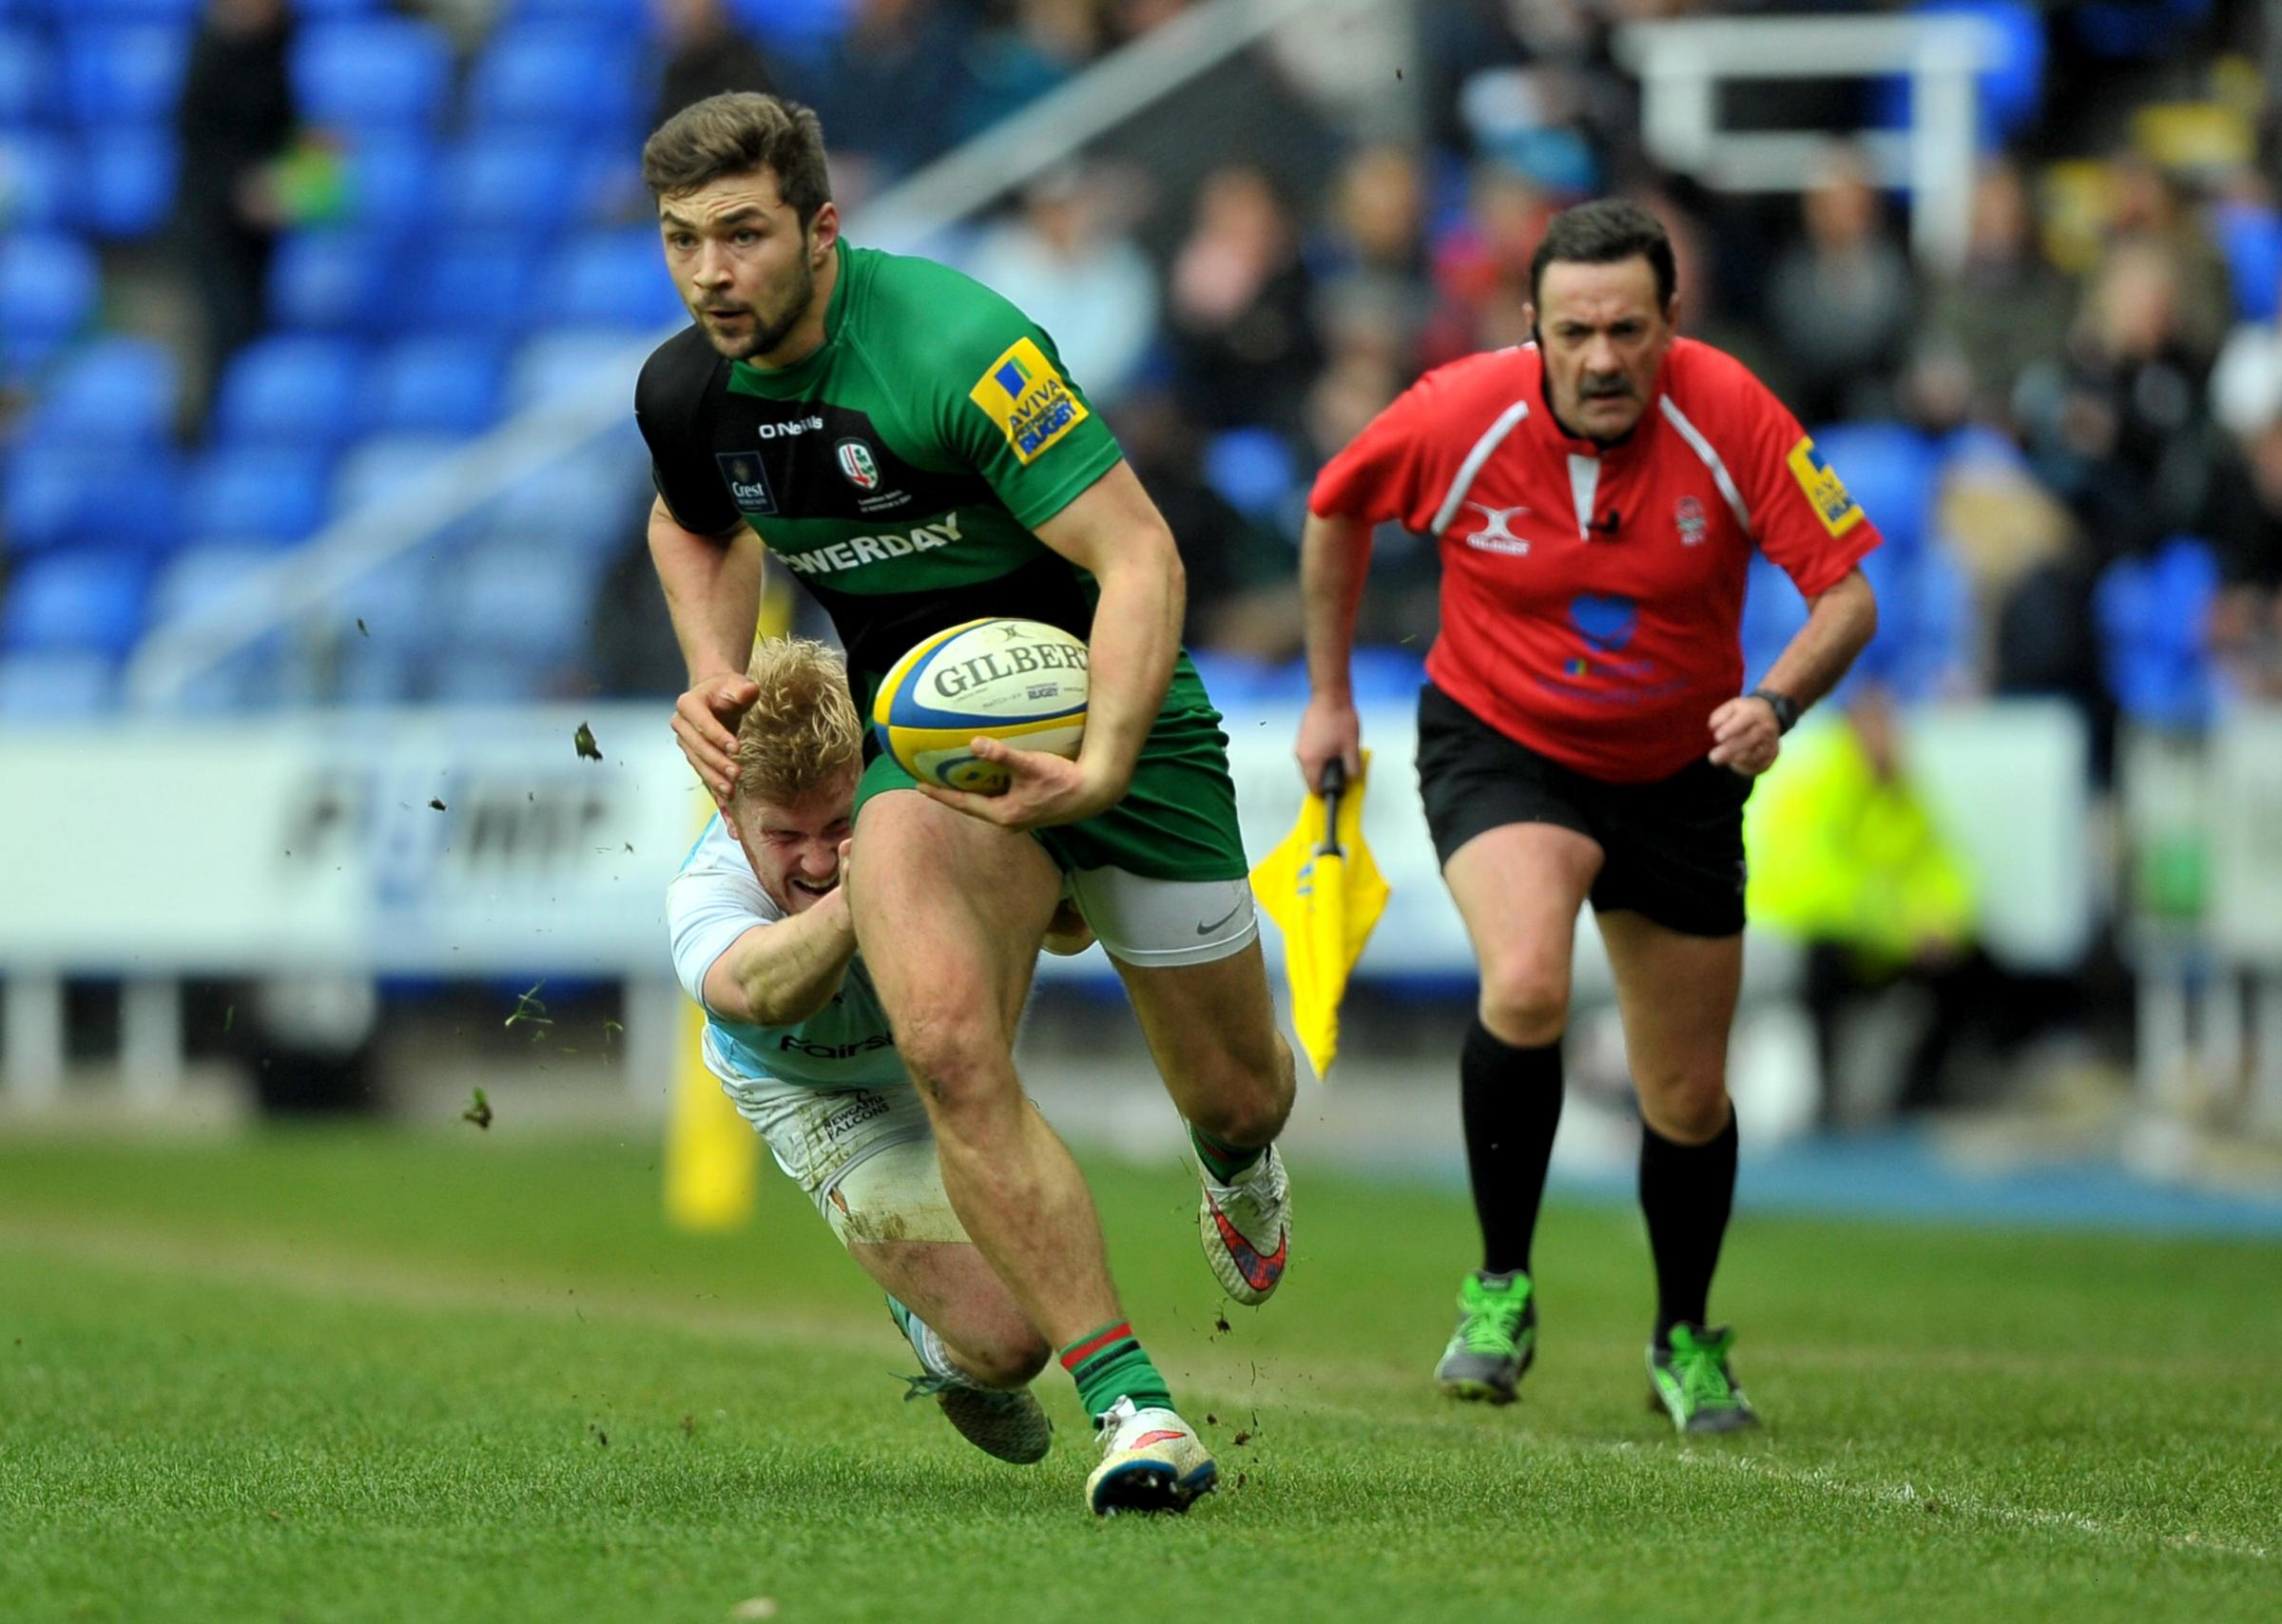 Tom Fowlie scored a late try for London Irish.